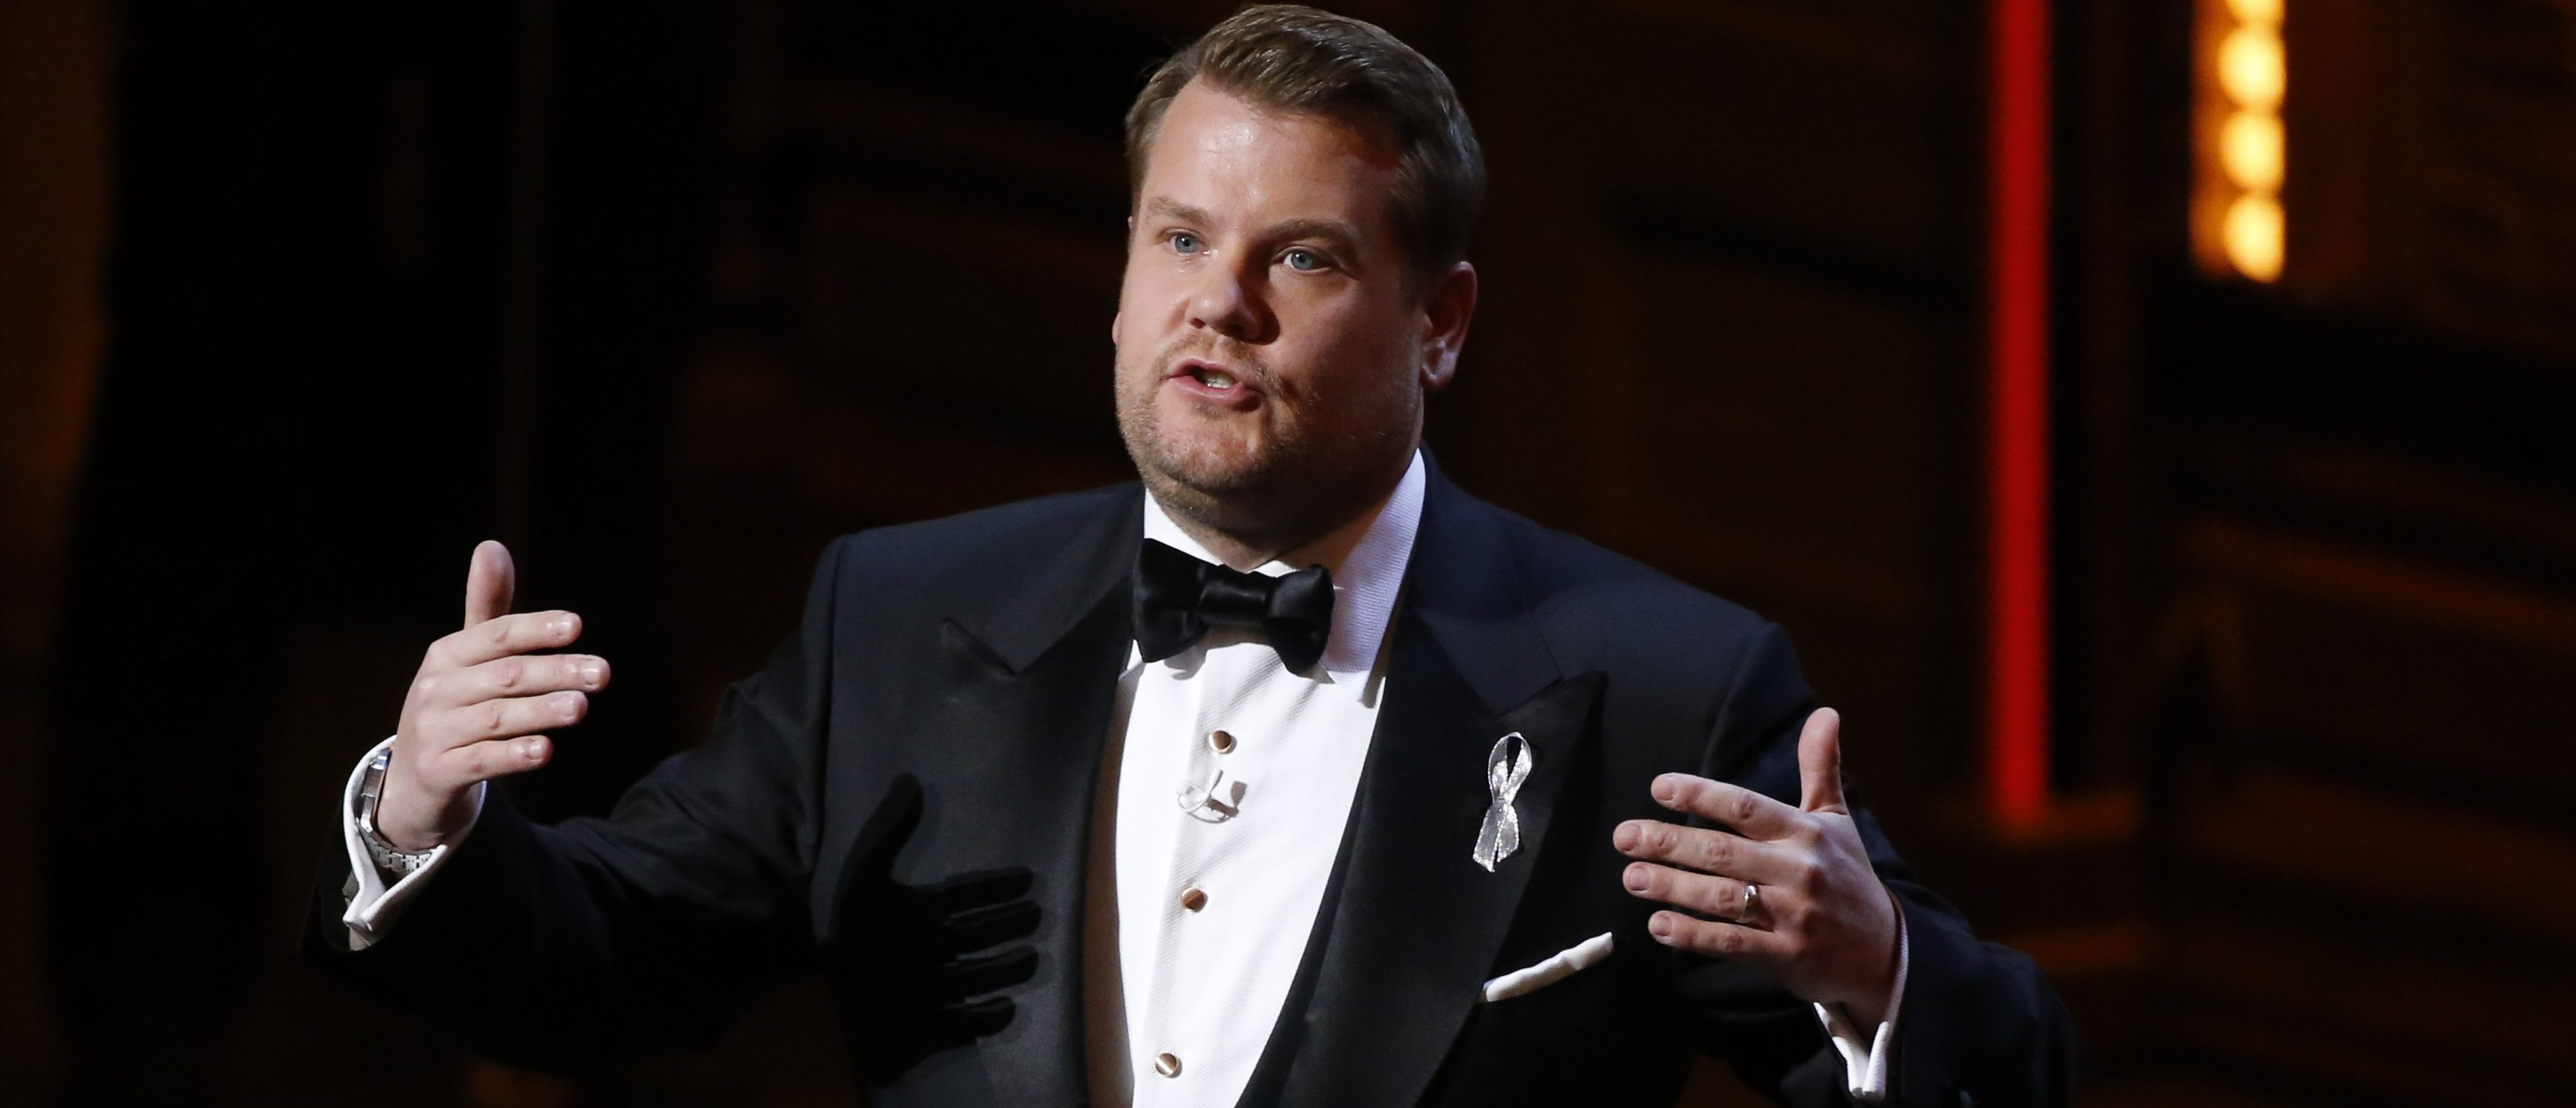 Show host James Corden speaks during the American Theatre Wing's 70th annual Tony Awards in New York, U.S., June 12, 2016. (photo: REUTERS/Lucas Jackson) - RTX2FUFX